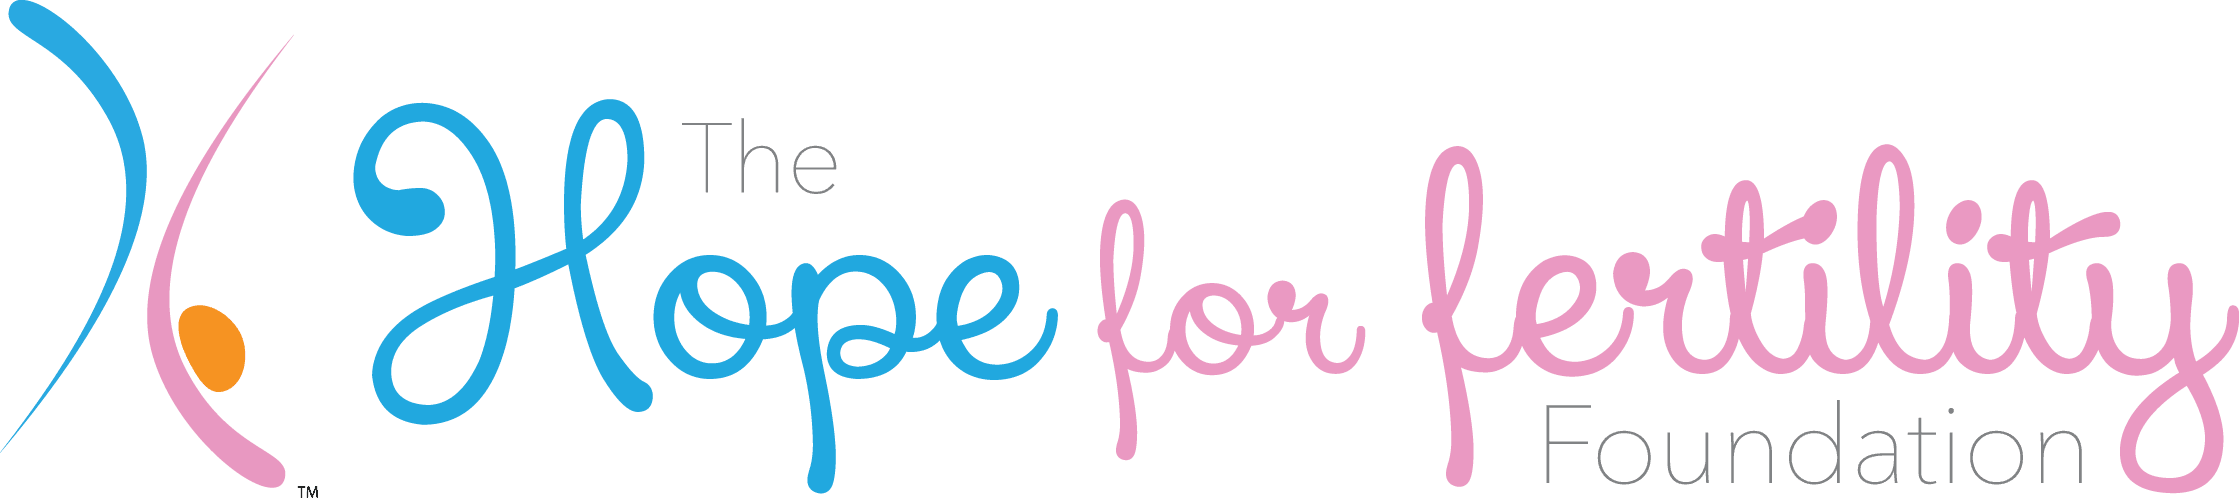 The Hope for Fertility Foundation